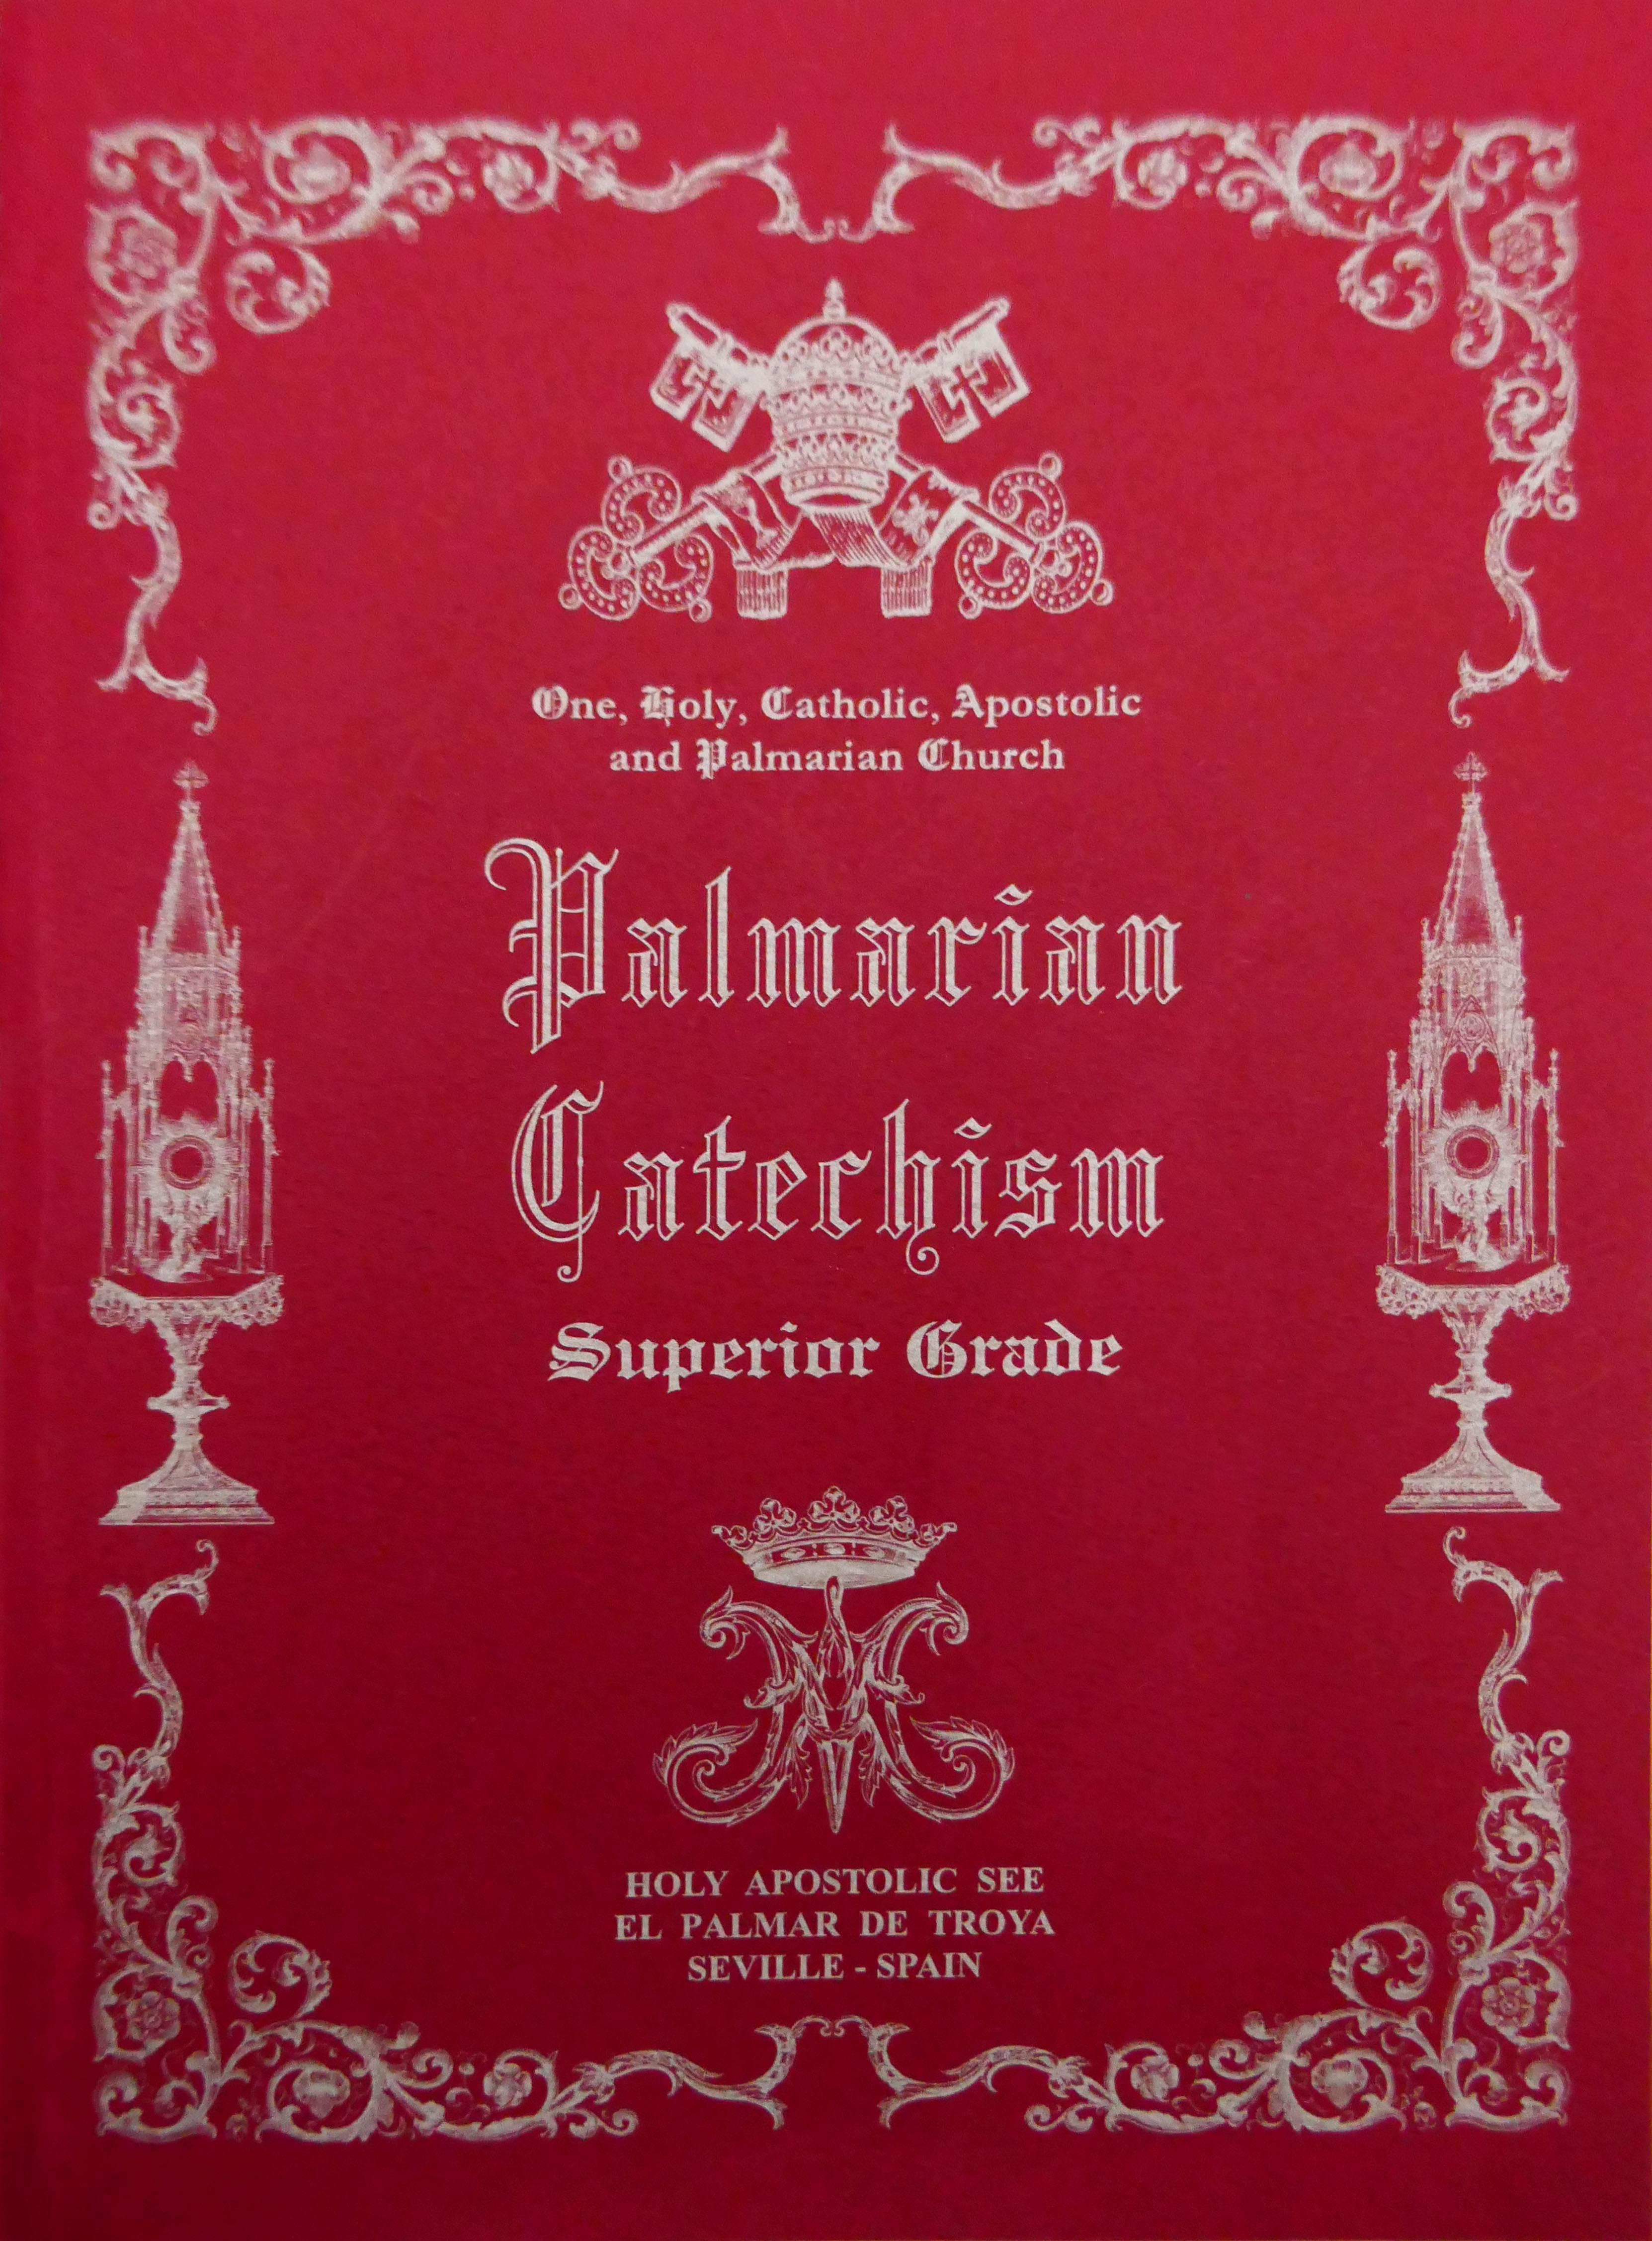 """<a href=""""https://www.eglisepalmarienne.org/wp-content/uploads/2019/03/Extracts-from-the-Palmarian-Catechism.pdf"""" title=""""Extracts from the Palmarian Catechism"""">Extracts from the Palmarian Catechism <br><br>En Savoir Plus</a>"""